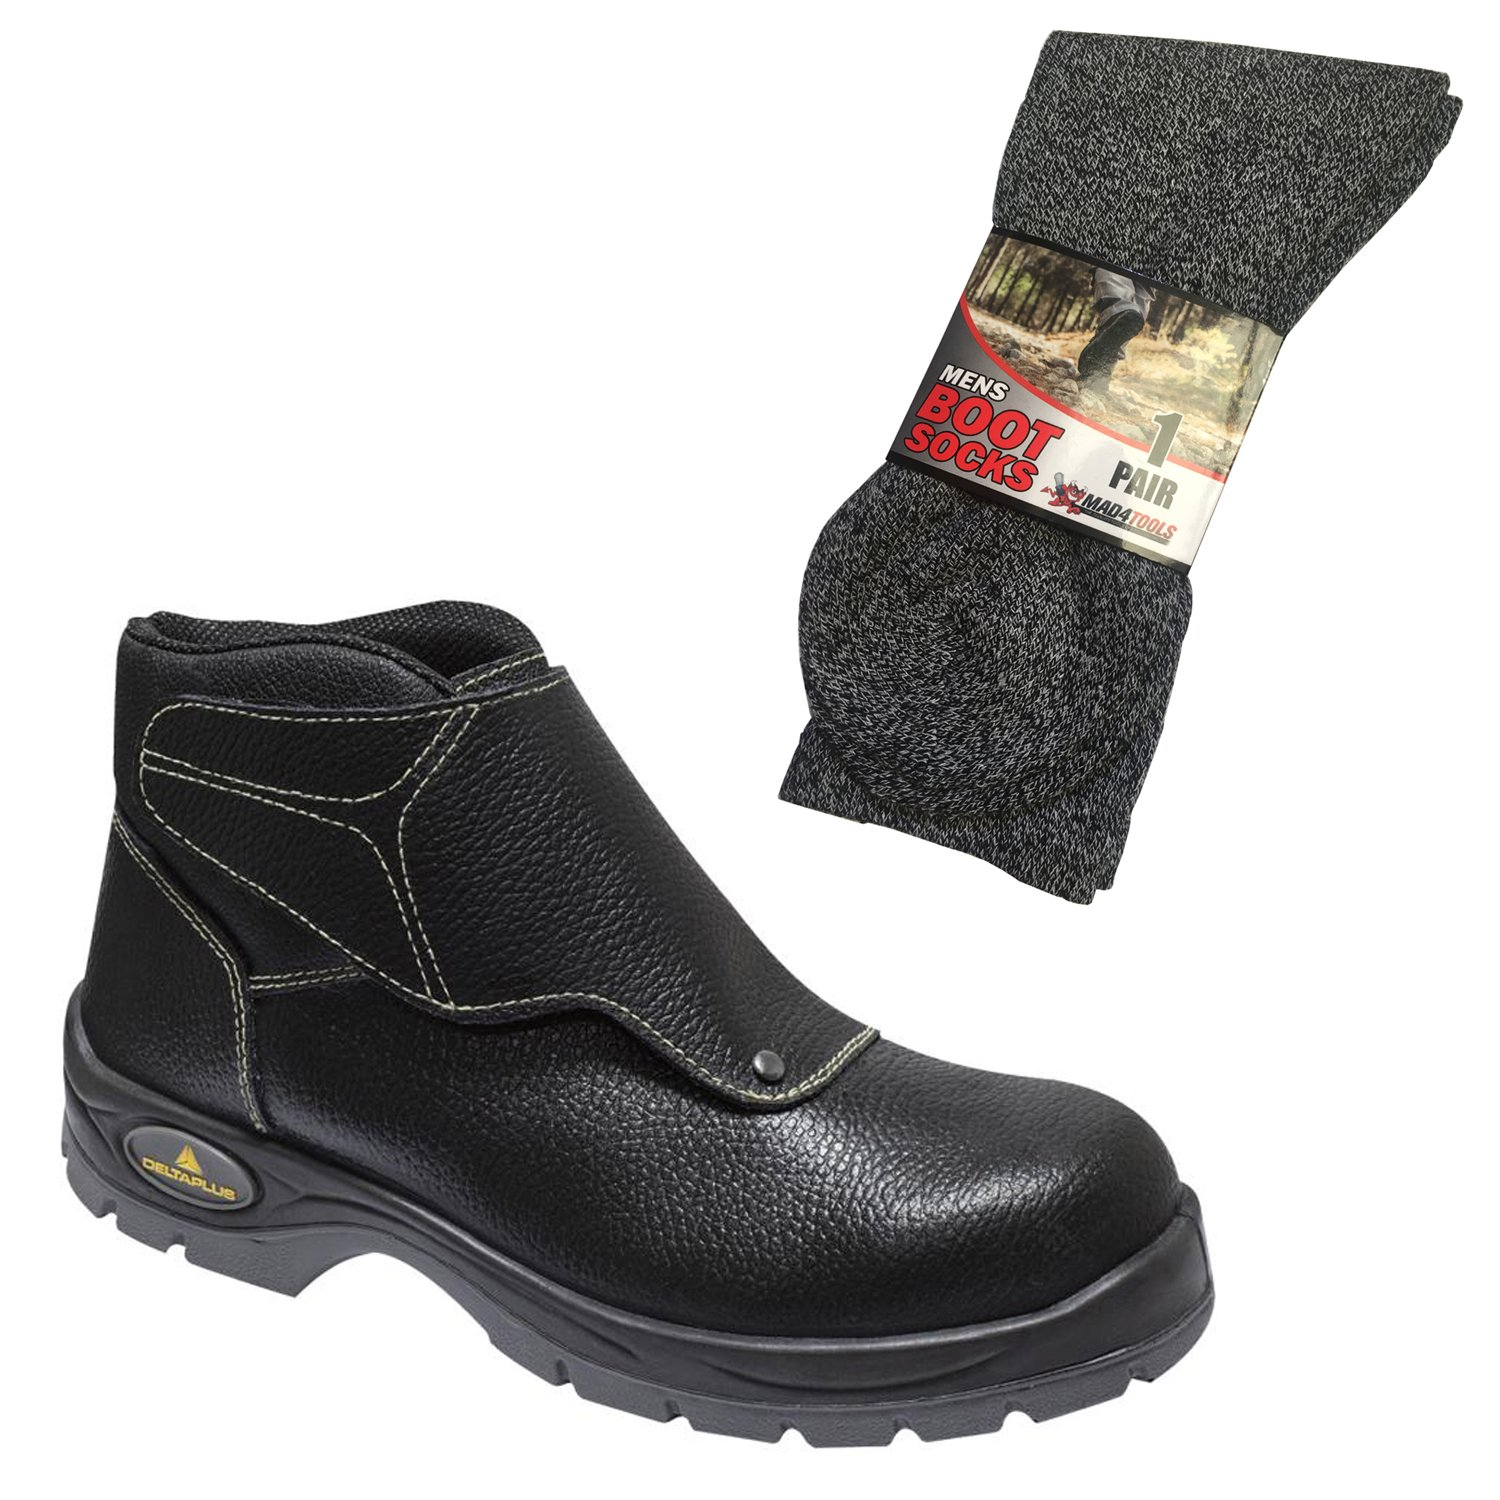 d8d510fae4e Delta Plus Cobra Water Resistant Leather Safety Welder Work Boots ...